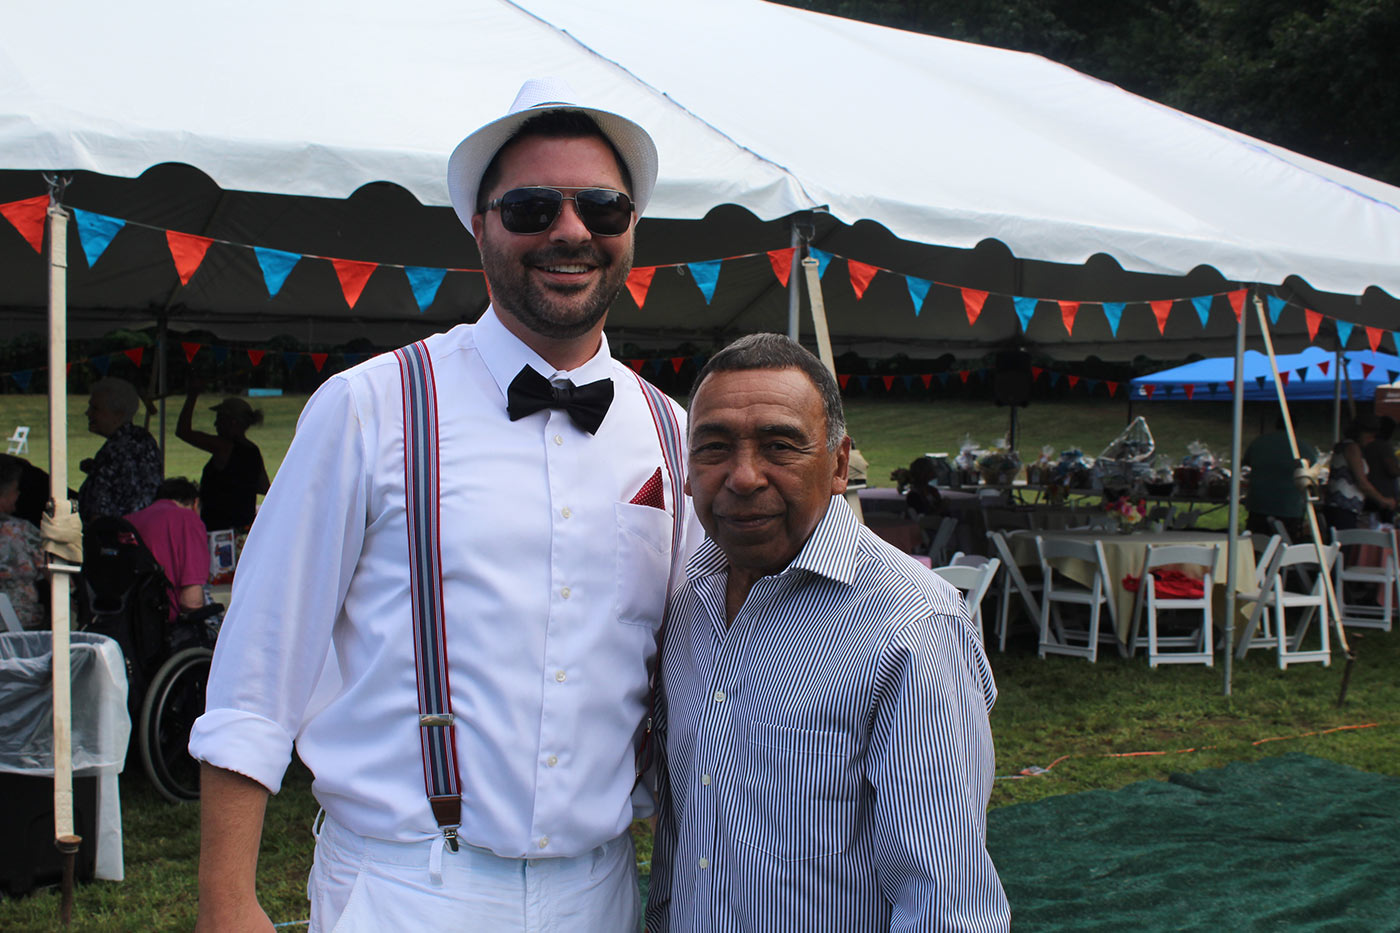 man in white hat smiles with guy in stripes